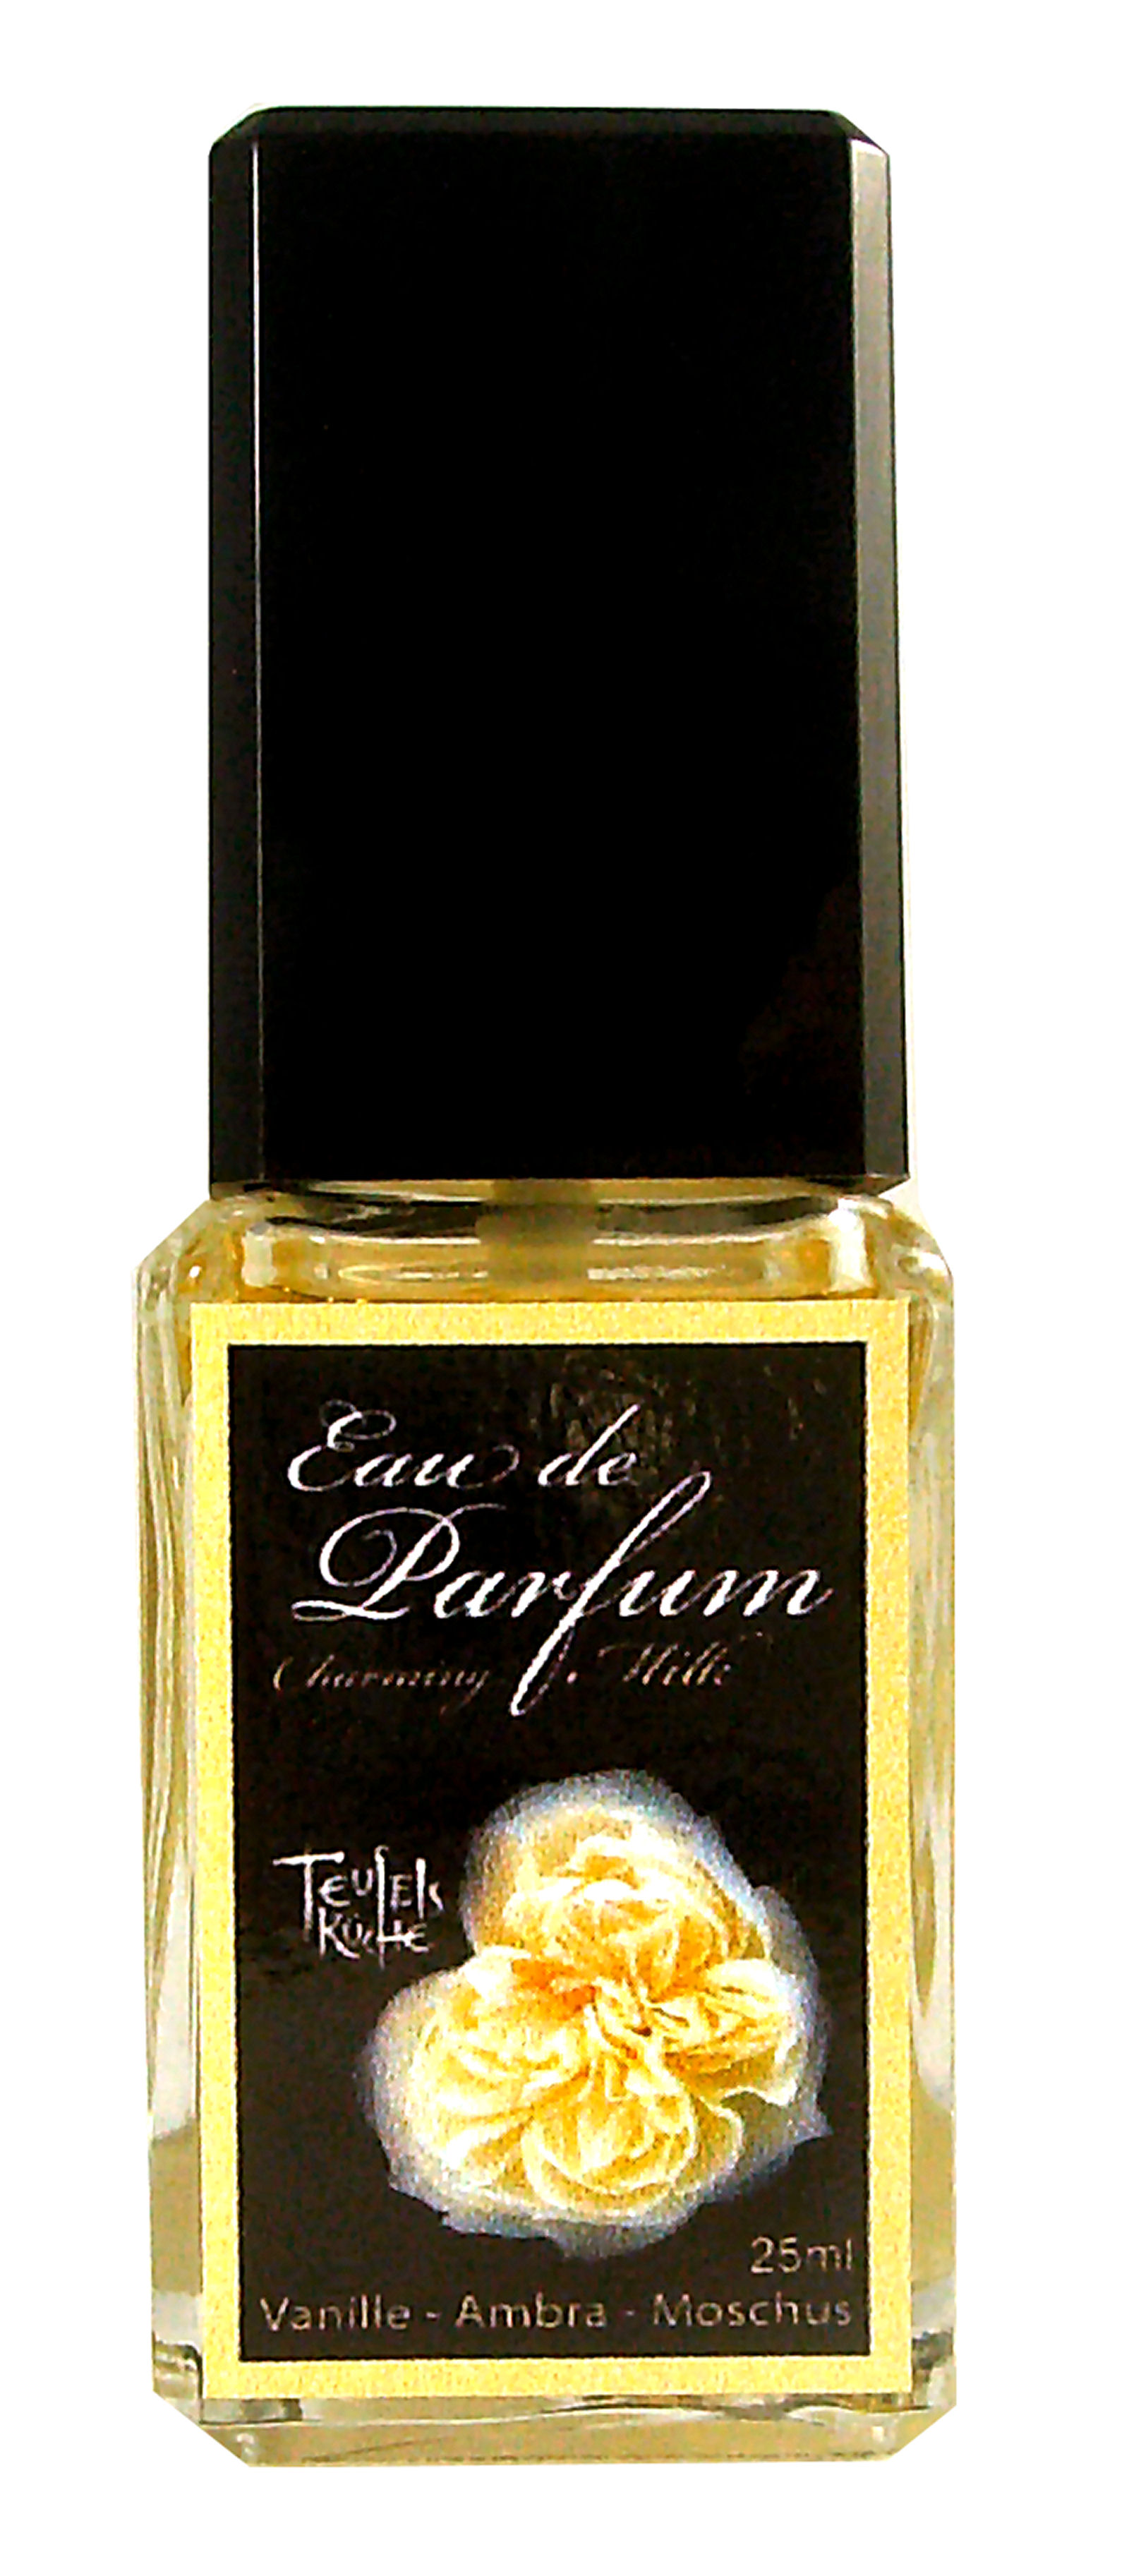 Eau de Parfüm, Charming Milk, 25 ml